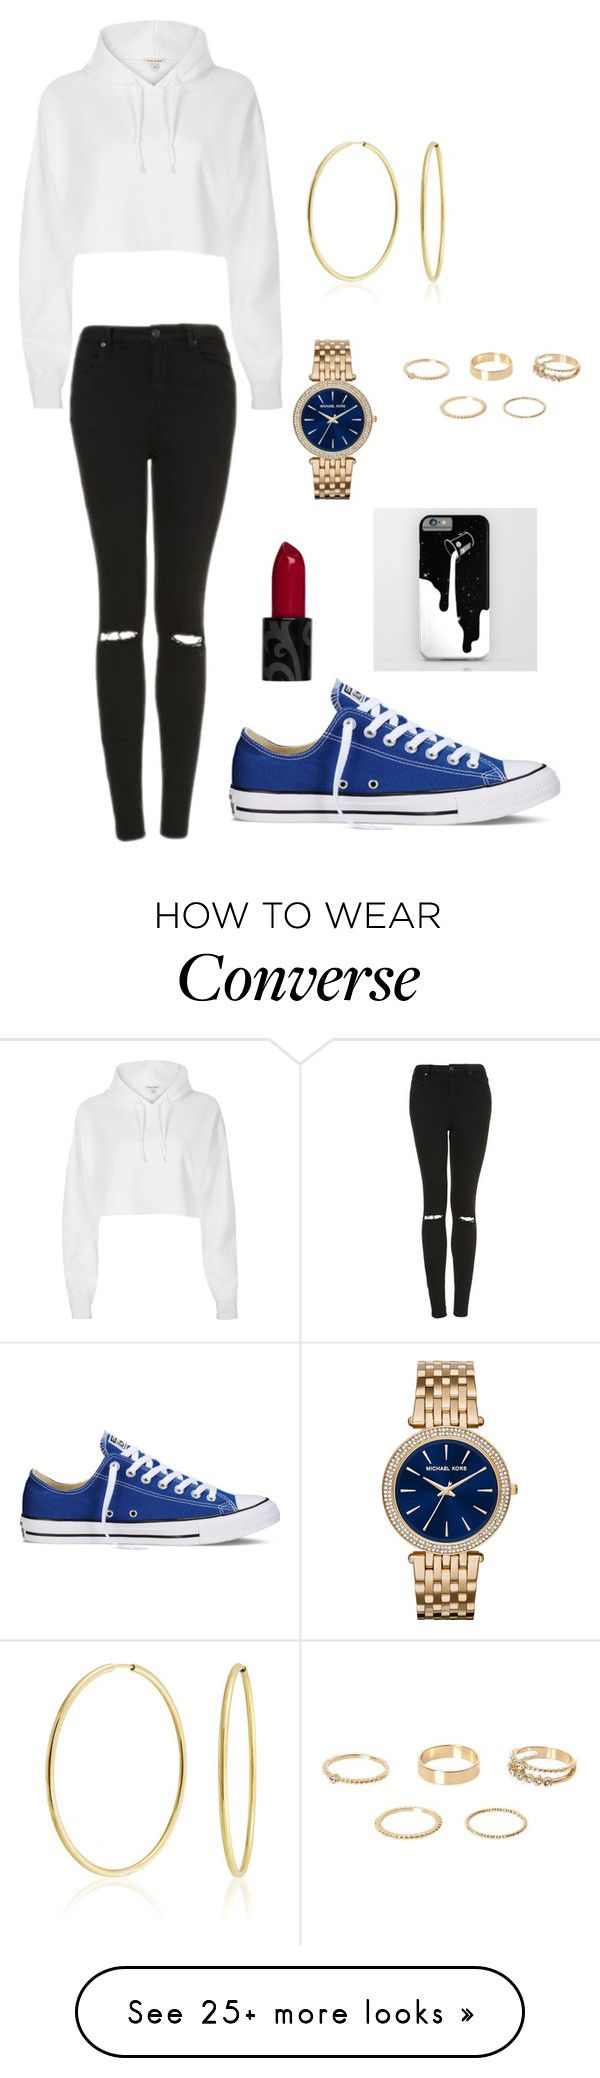 """""""Friday Night Chucks!!!!"""" by kelornp on Polyvore featuring Topshop, River Island, Converse, Bling Jewelry and Michael Kors"""